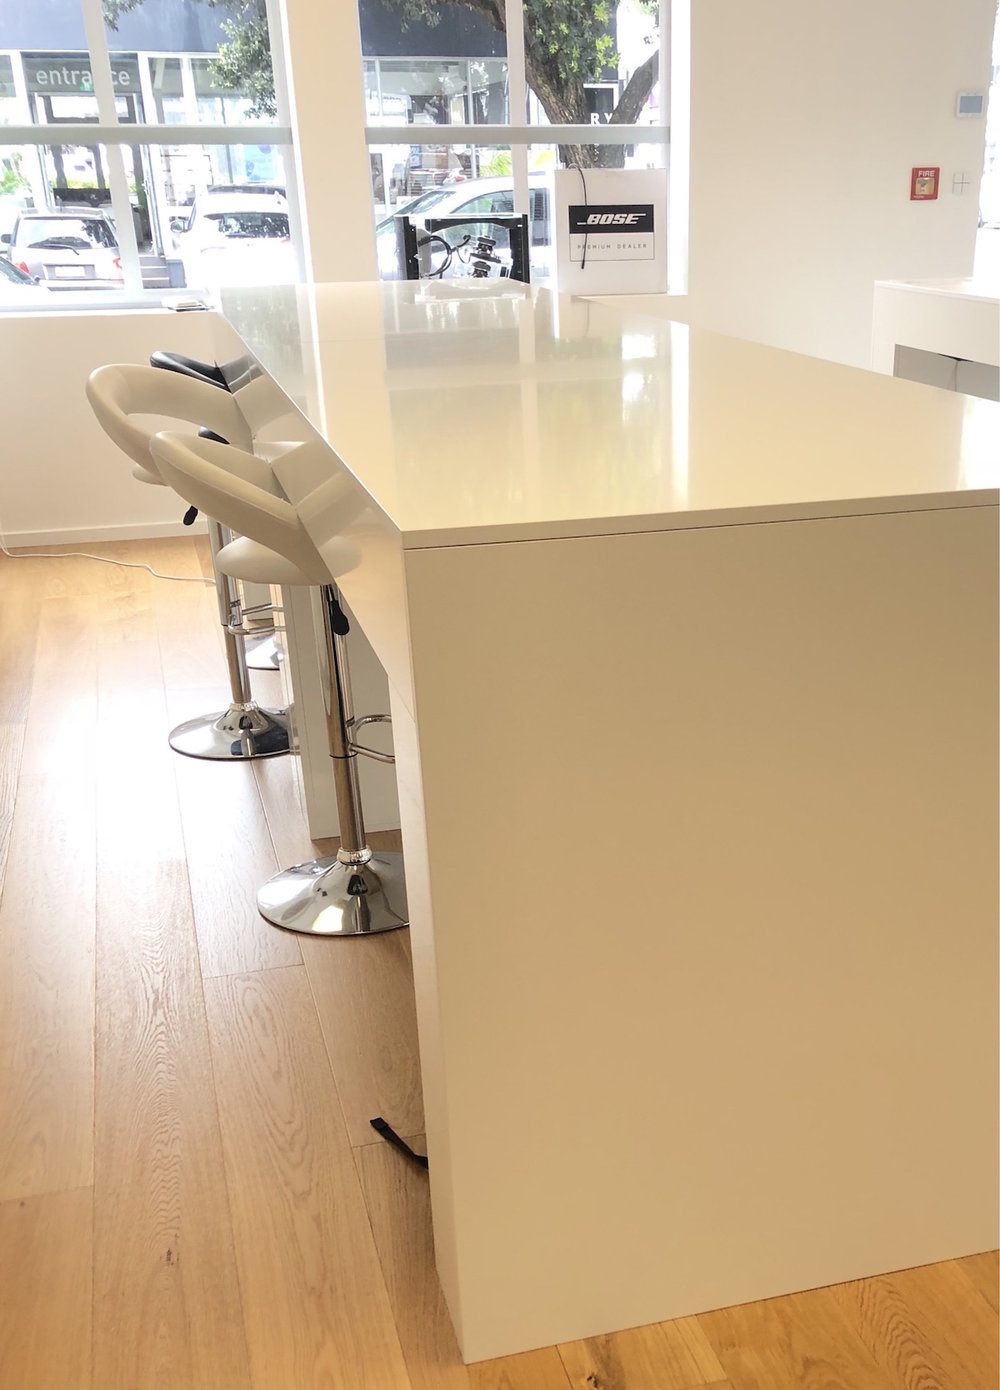 Island bench used as a desk within the Store's 'imitation' kitchen